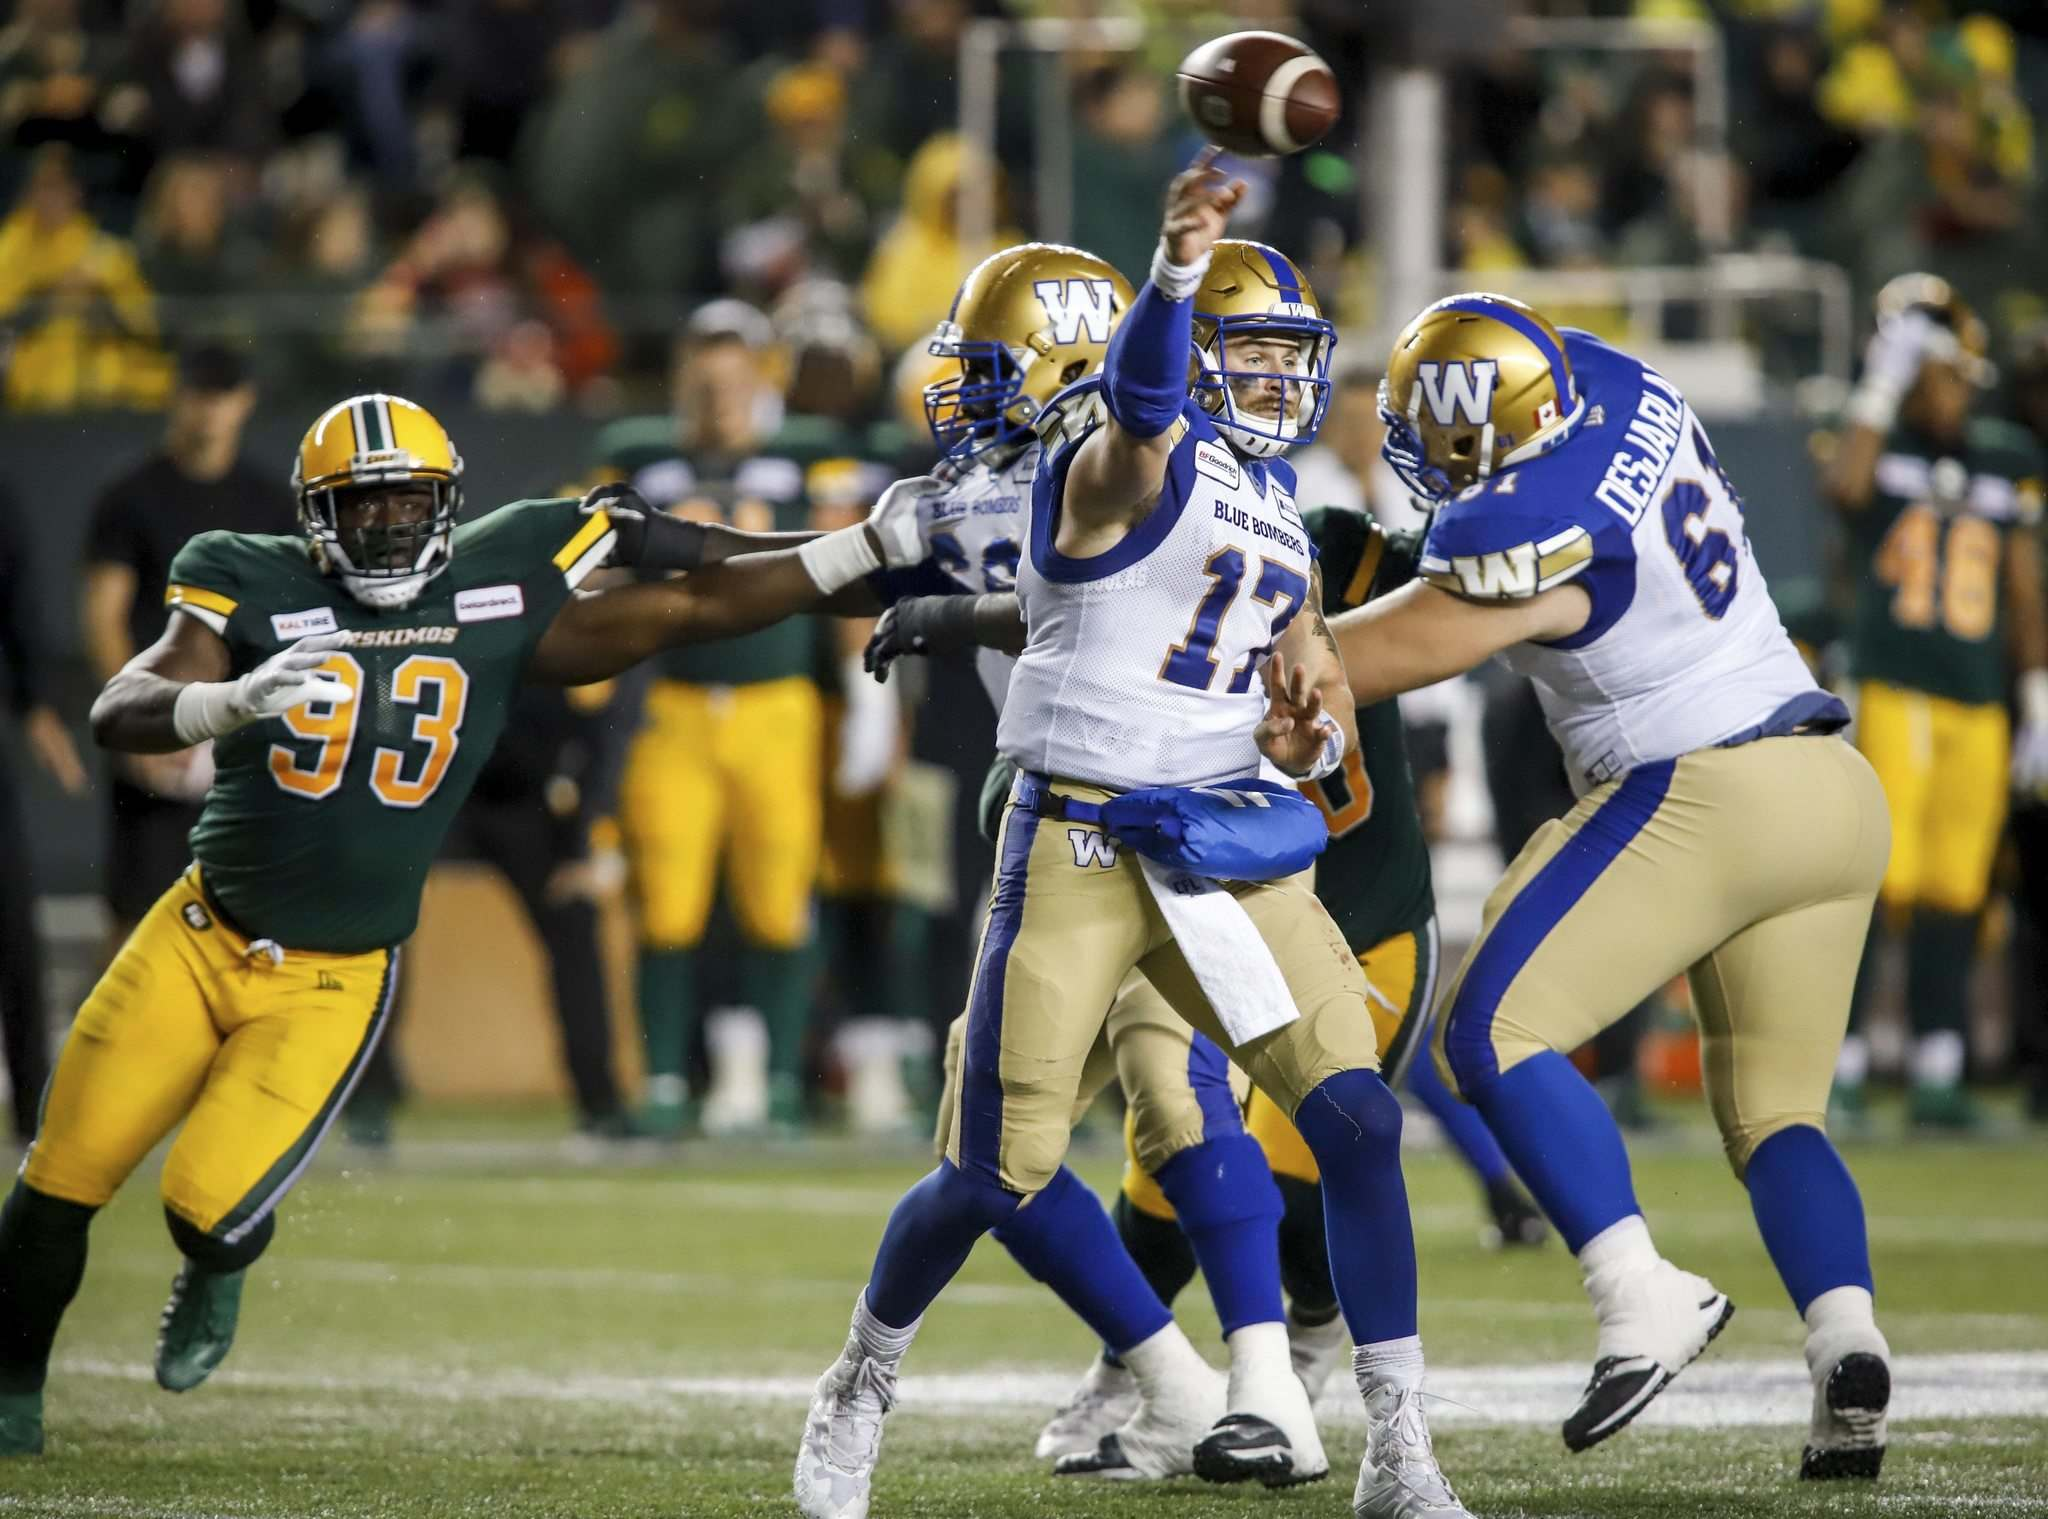 JEFF MCINTOSH / THE CANADIAN PRESS FILES</p><p>Winnipeg Blue Bombers quarterback Chris Streveler, centre, throws the ball as Edmonton Eskimos' Kwaku Boateng closes in during second half CFL football action in Edmonton, Friday, Aug. 23, 2019.</p>